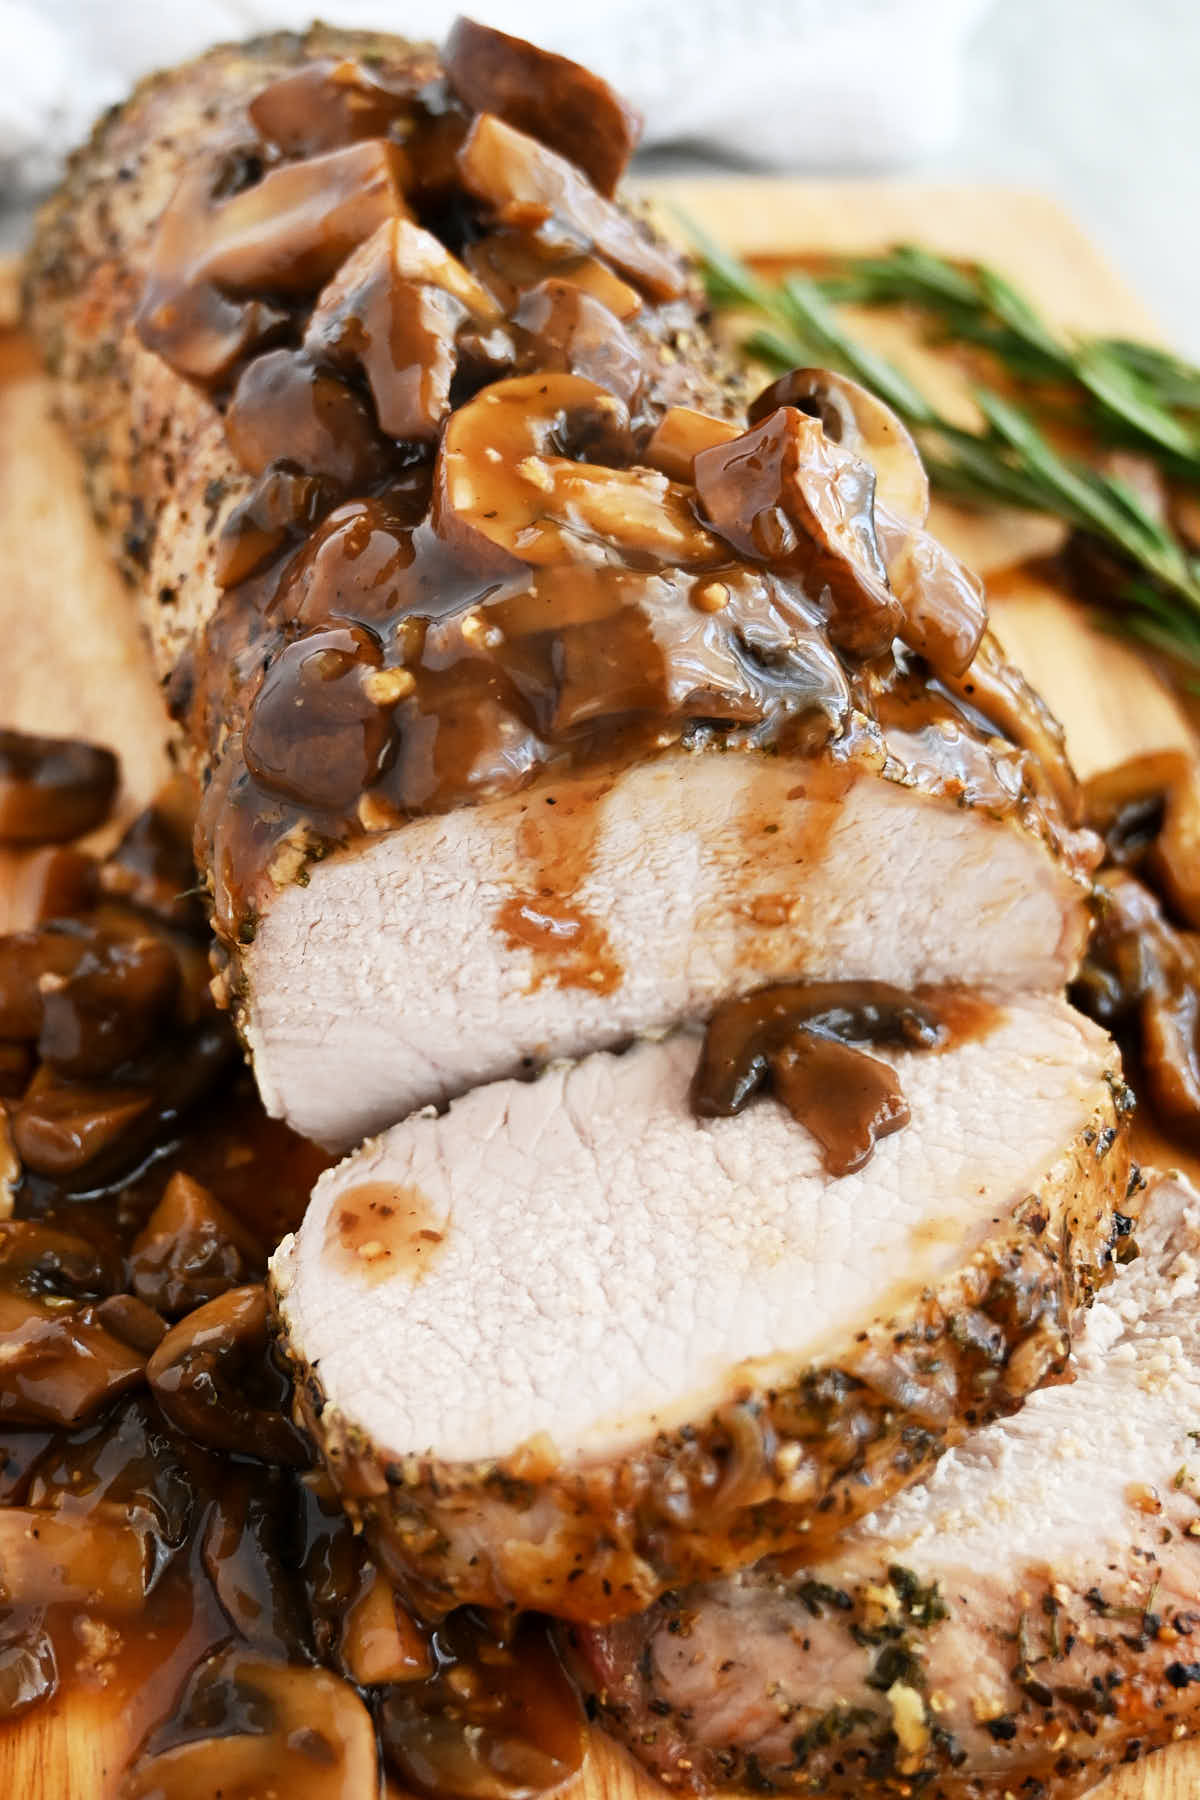 Roasted pork loin, on a cutting board, mushroom sauce on top.